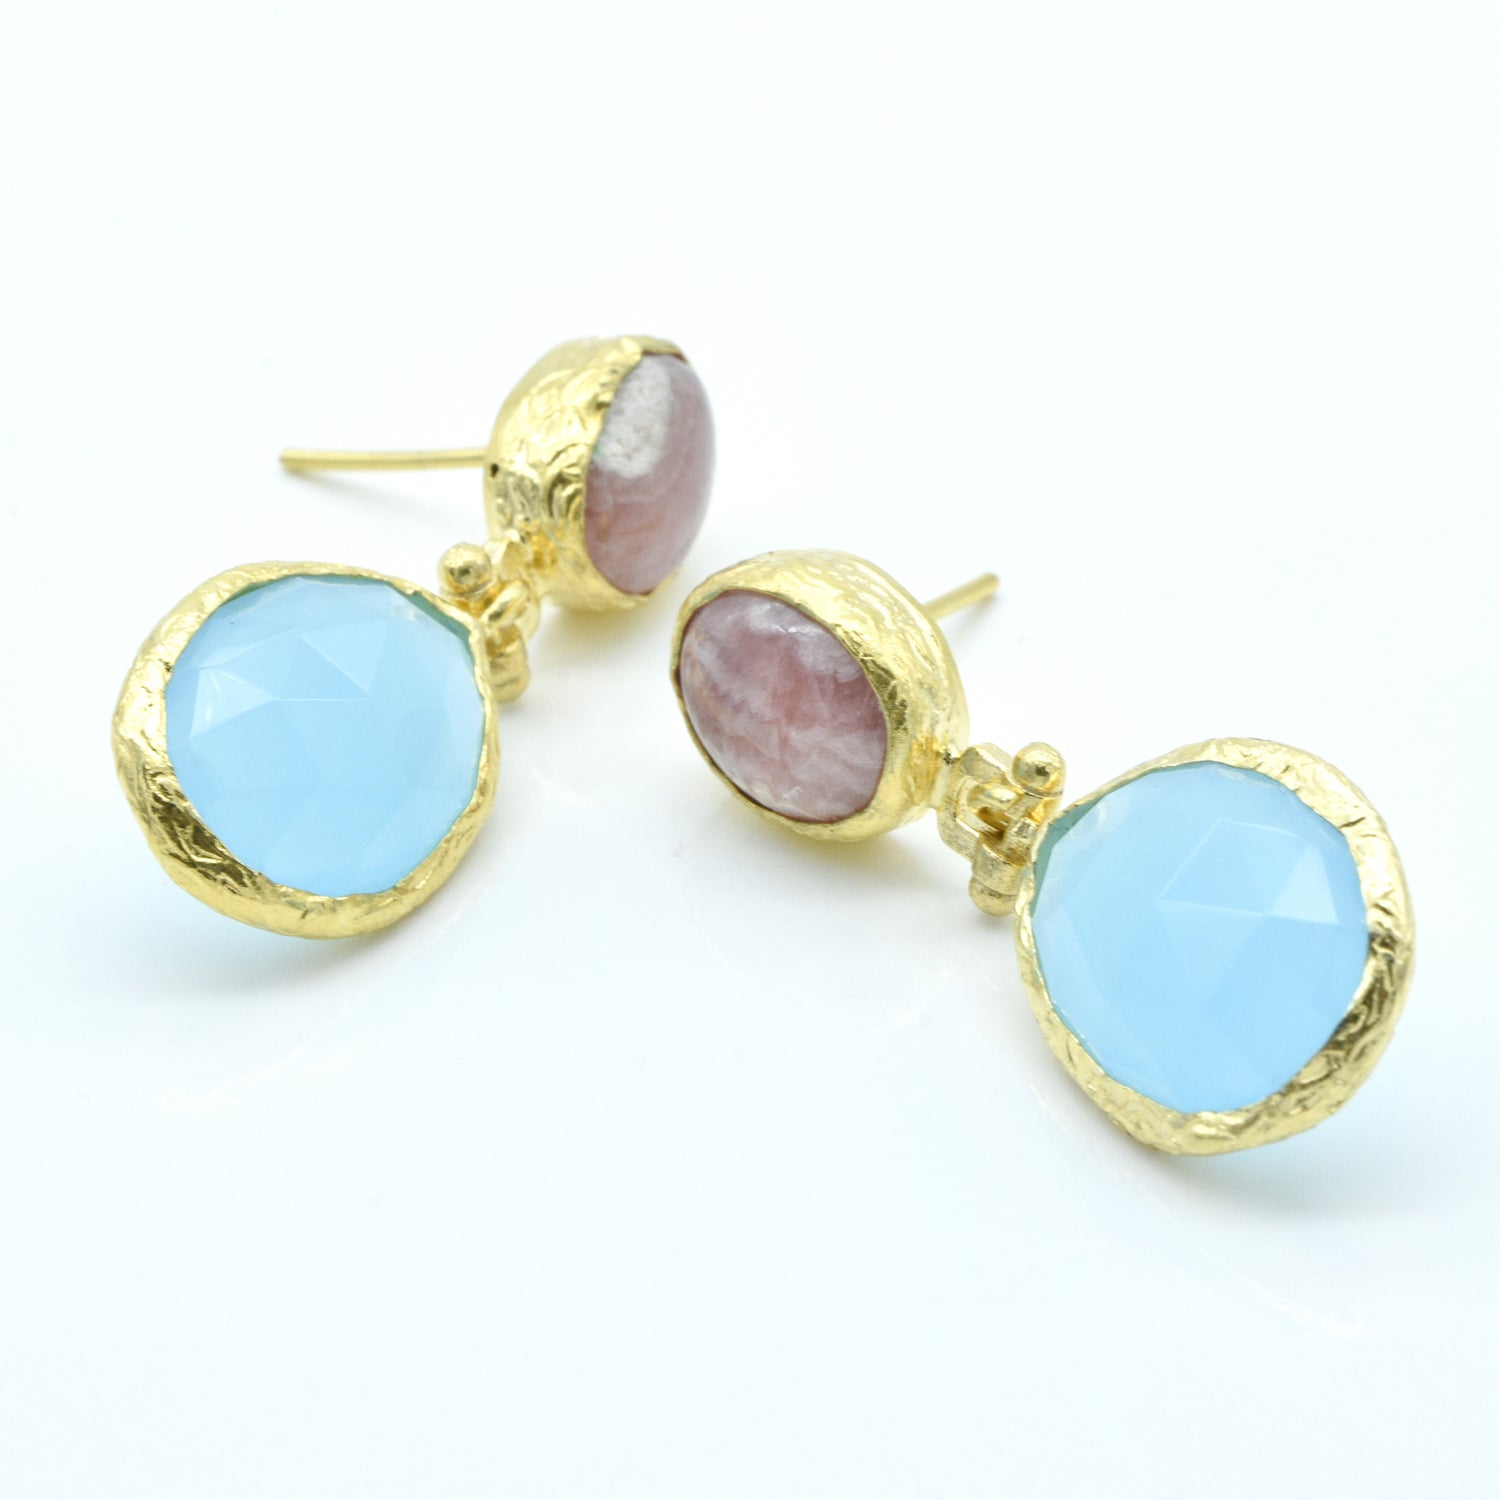 Aylas Agate and Aqua Marine earrings - 21ct Gold plated semi precious gemstone - Handmade in Ottoman Style by Artisan